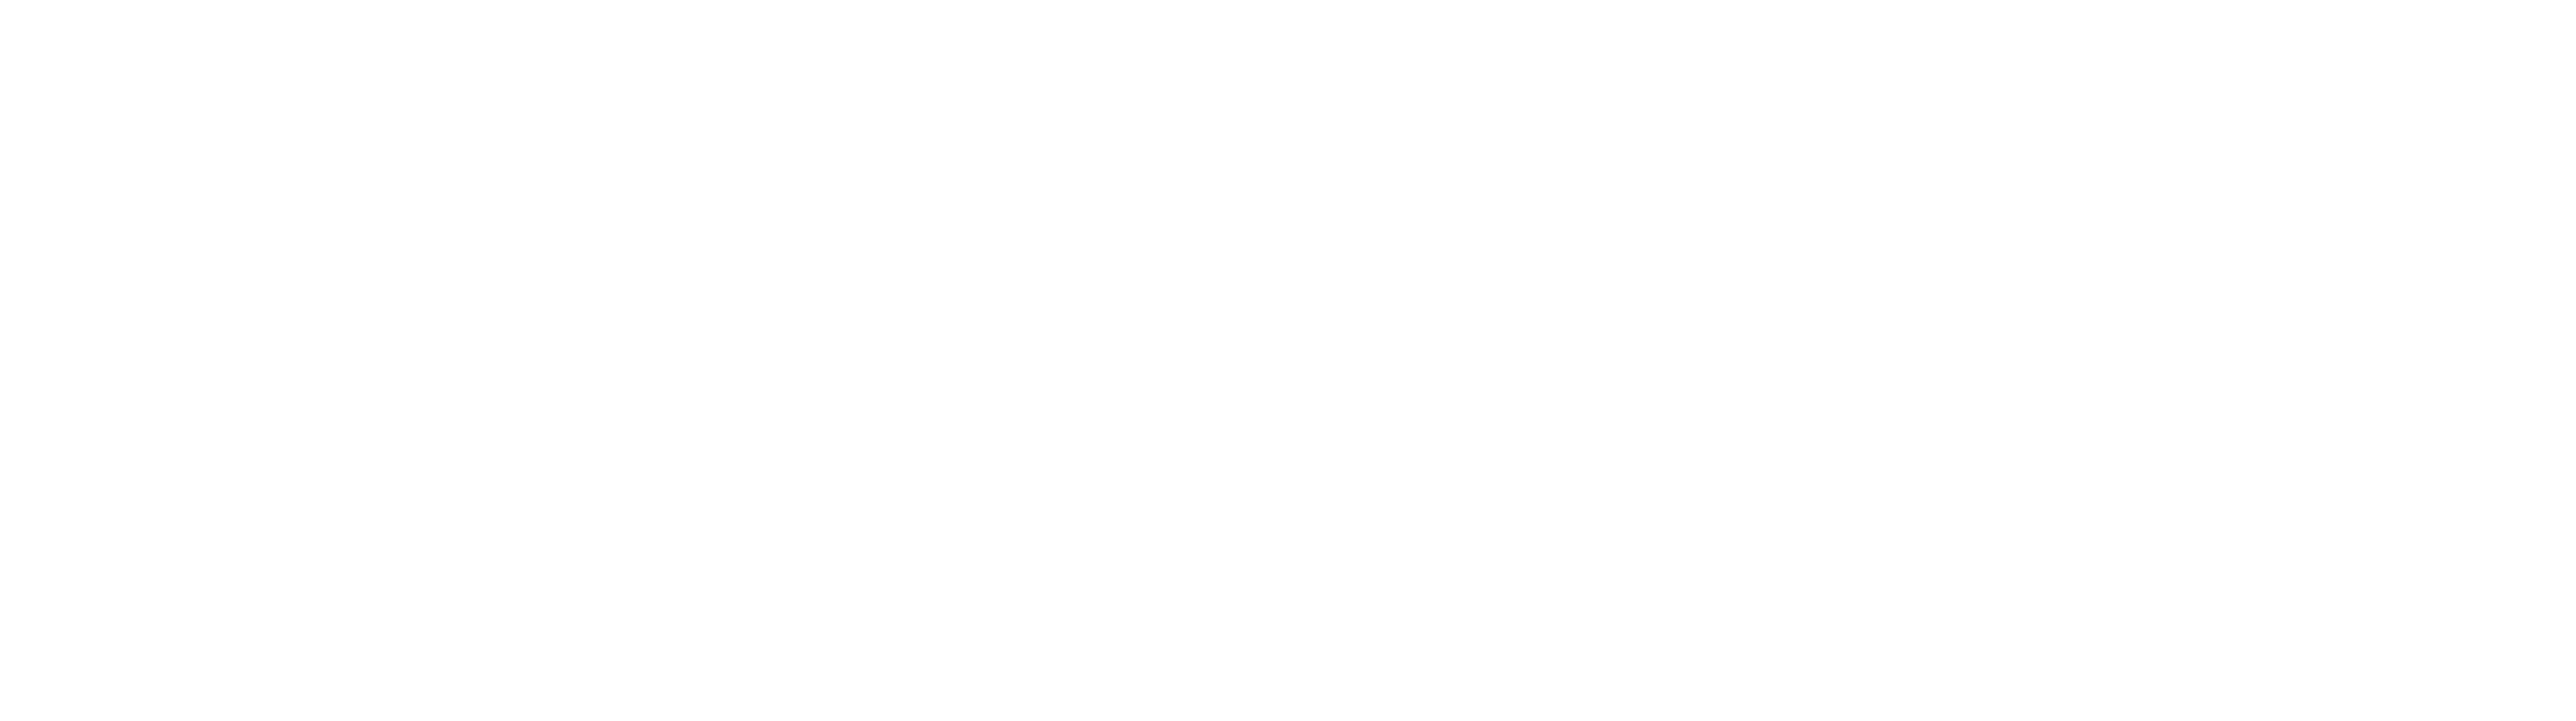 The Ottawa Flower Shop - Flower Delivery in Ottawa, ON